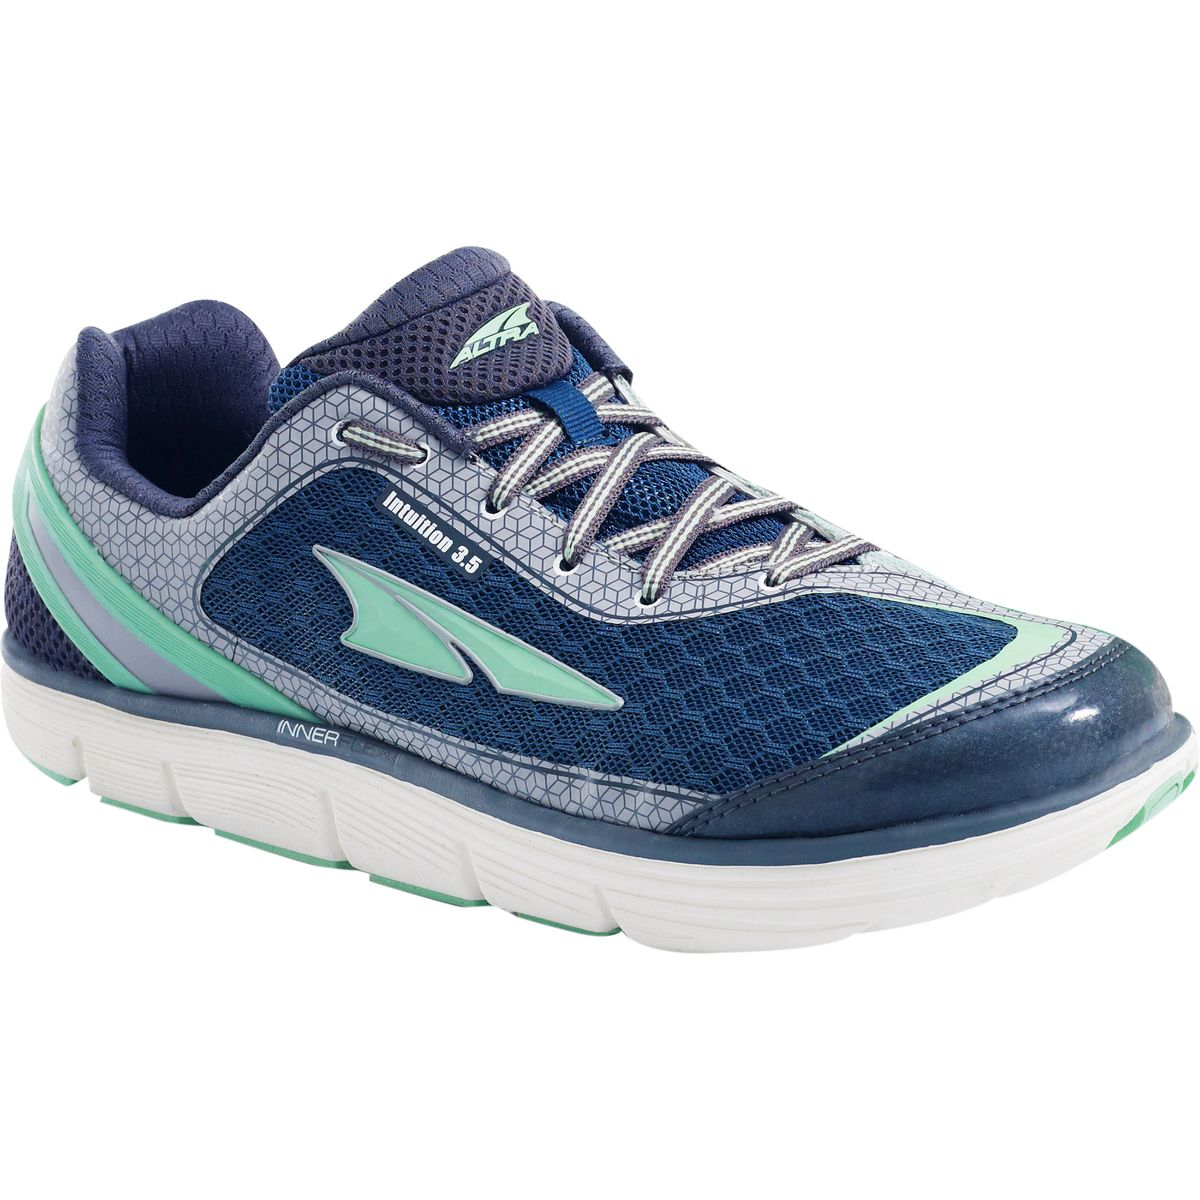 Altra The One   Sale Uk Size   Running Shoes